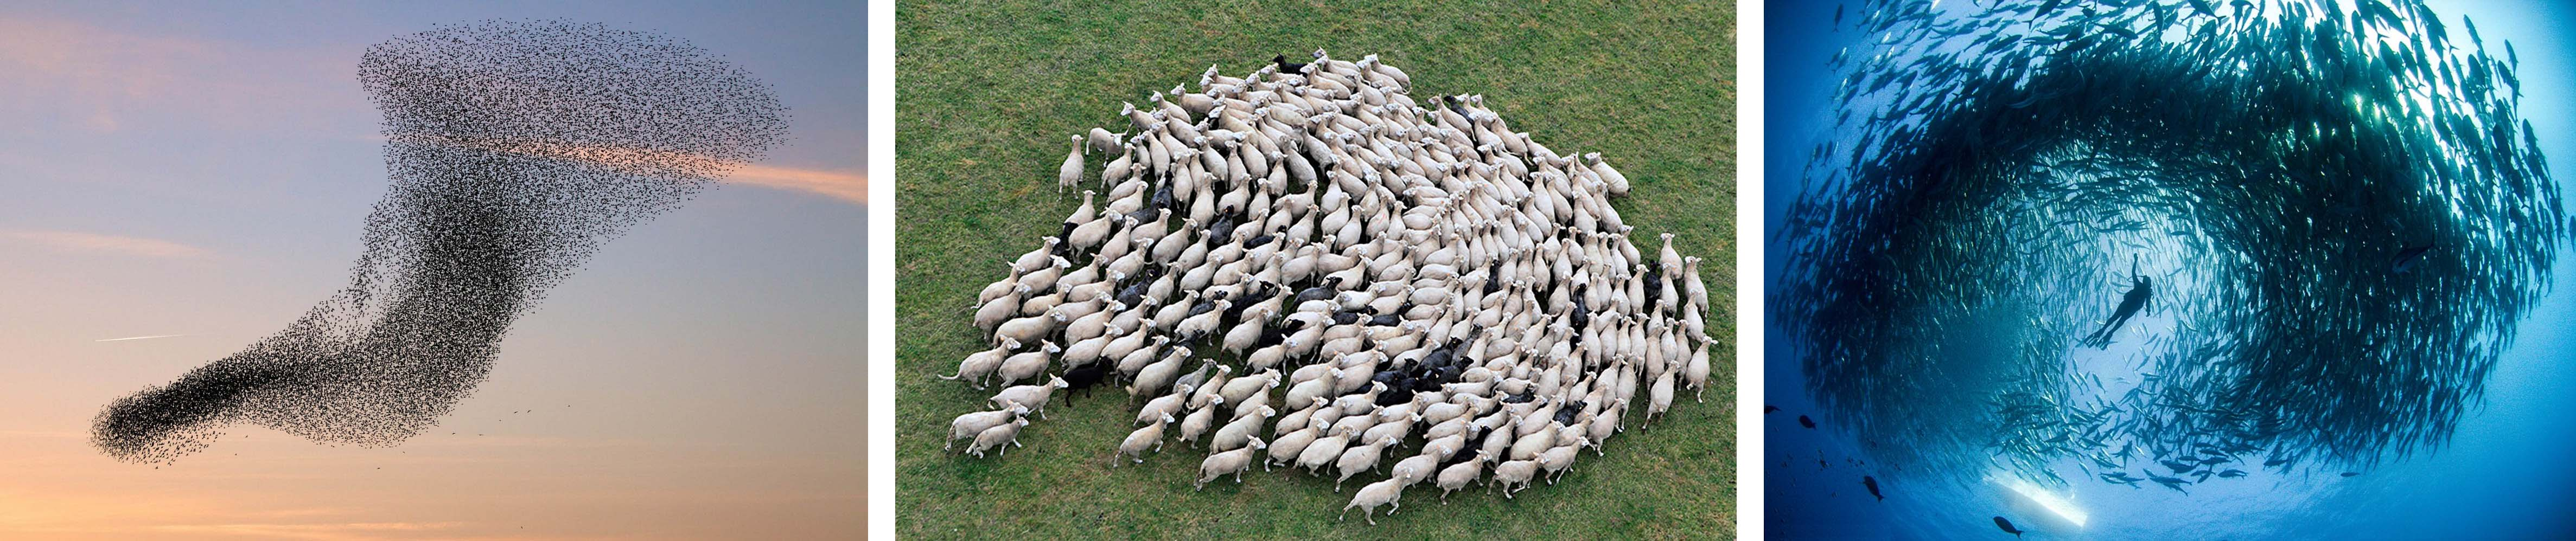 Flocking observed in fish, sheep and birds. Image from www.google.com